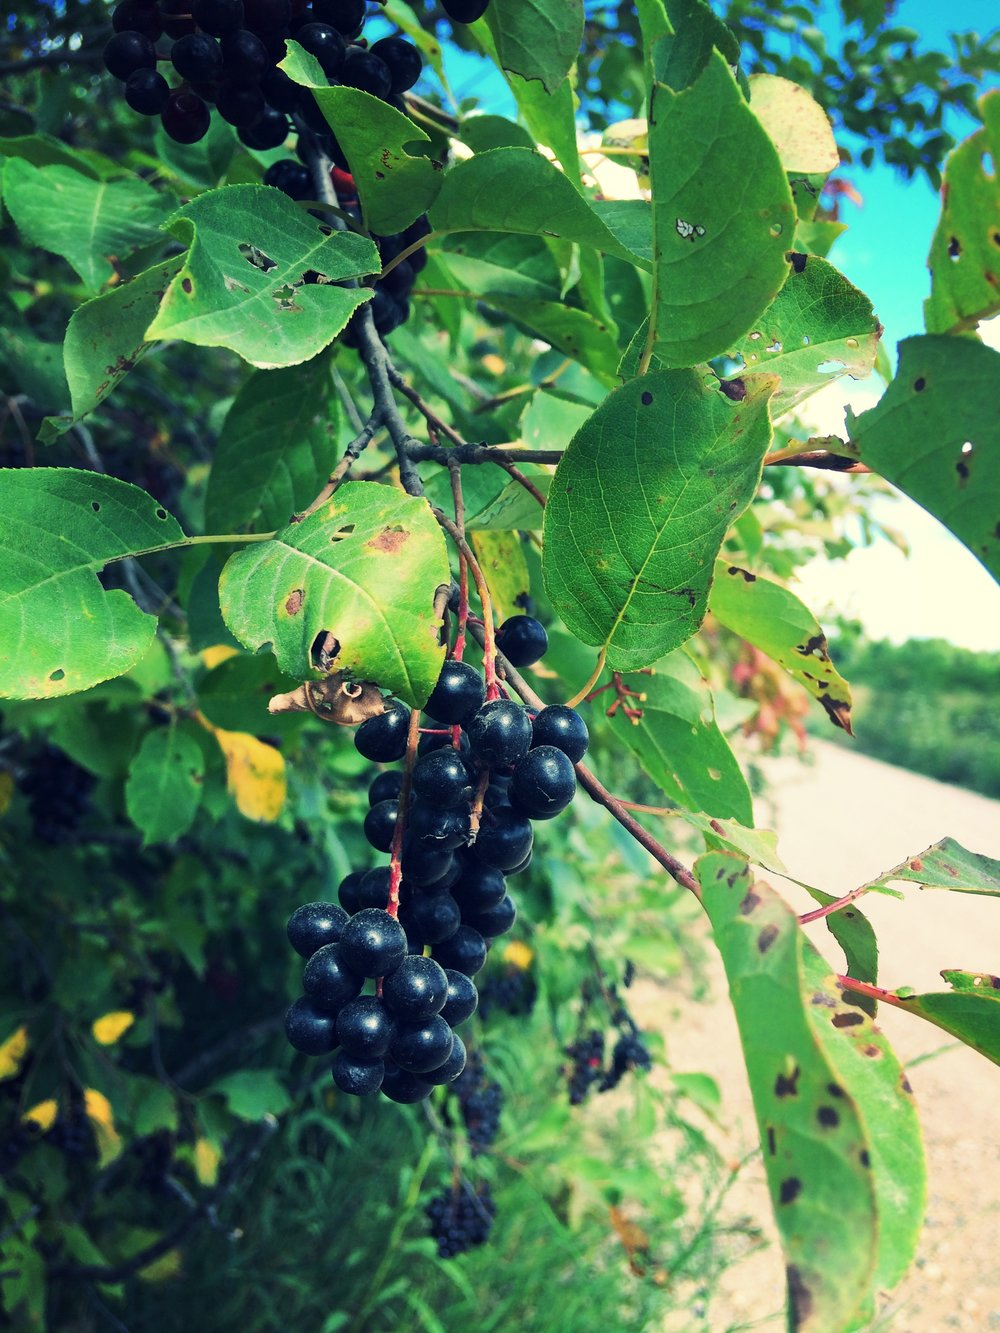 chokecherries growing along a gravel road